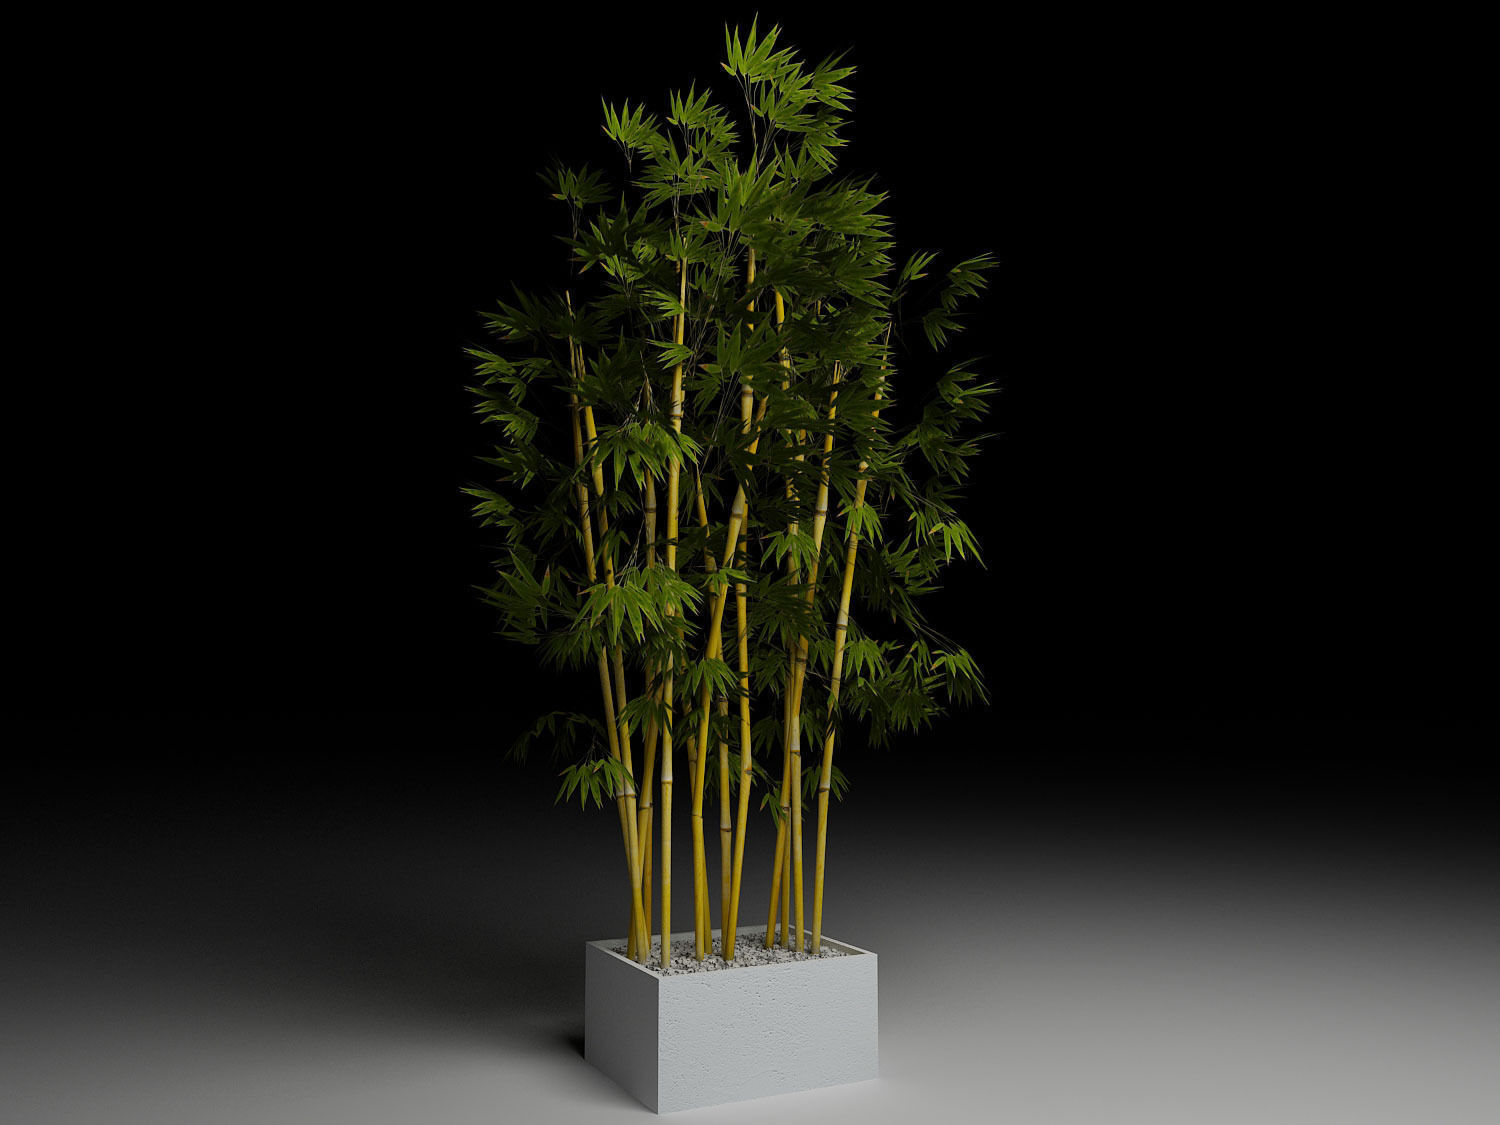 Bamboo in planter box 3d model 3ds max files free download ...